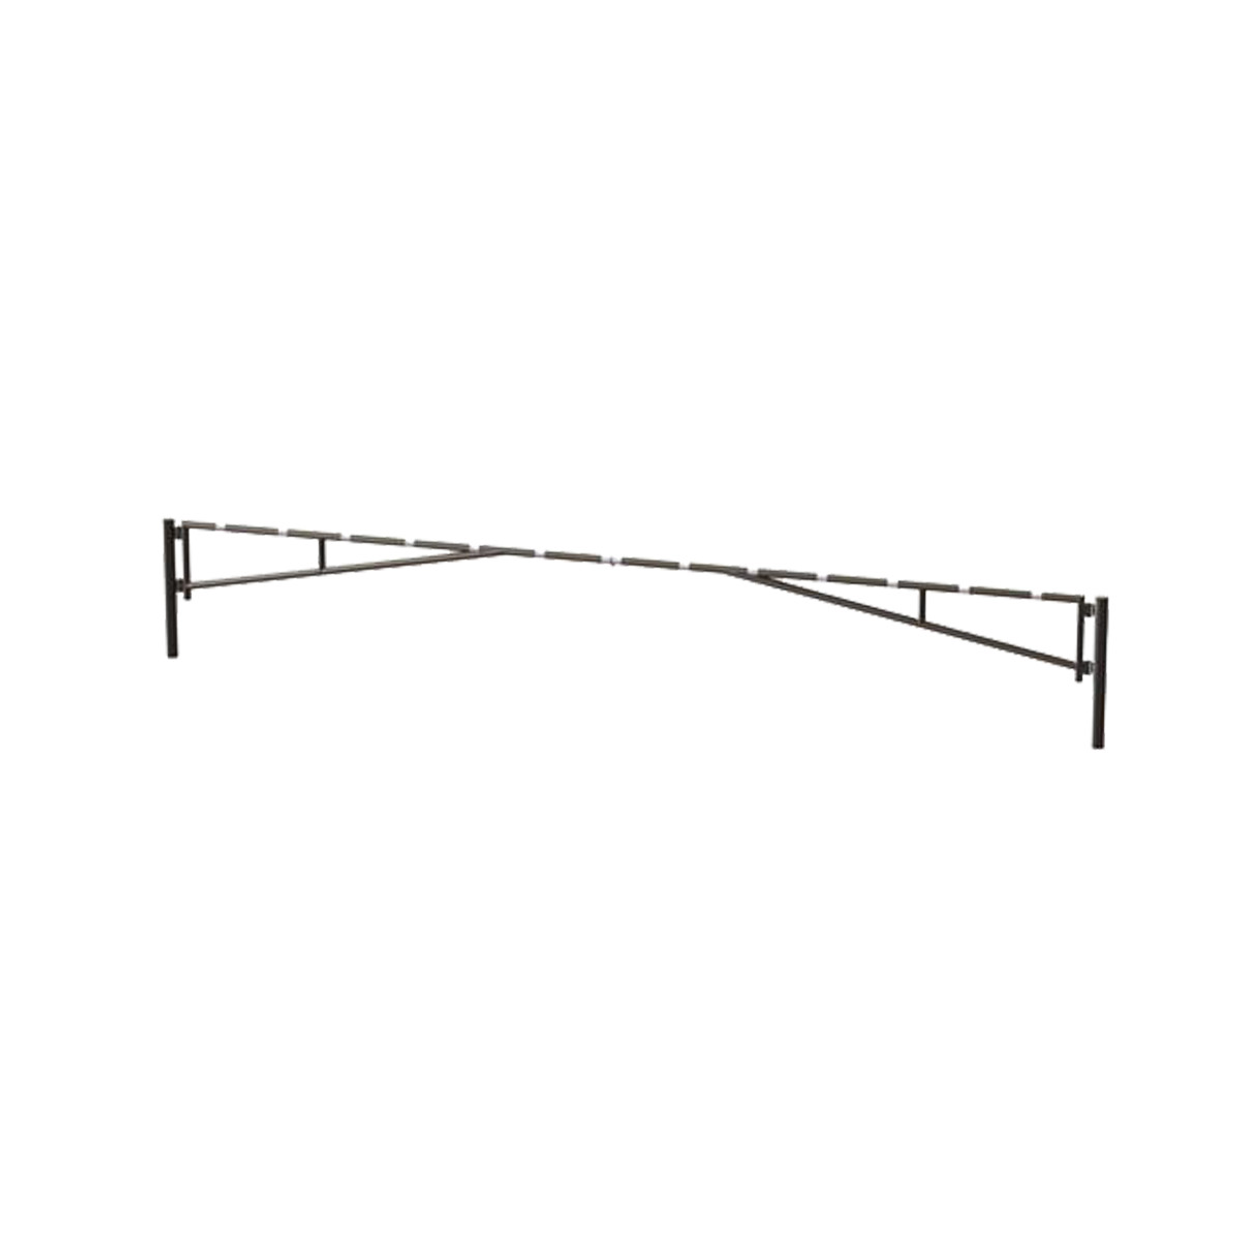 14020 SENTINEL Manual Double Leaf Swing Barrier Gate-Arm Galvanized HERO